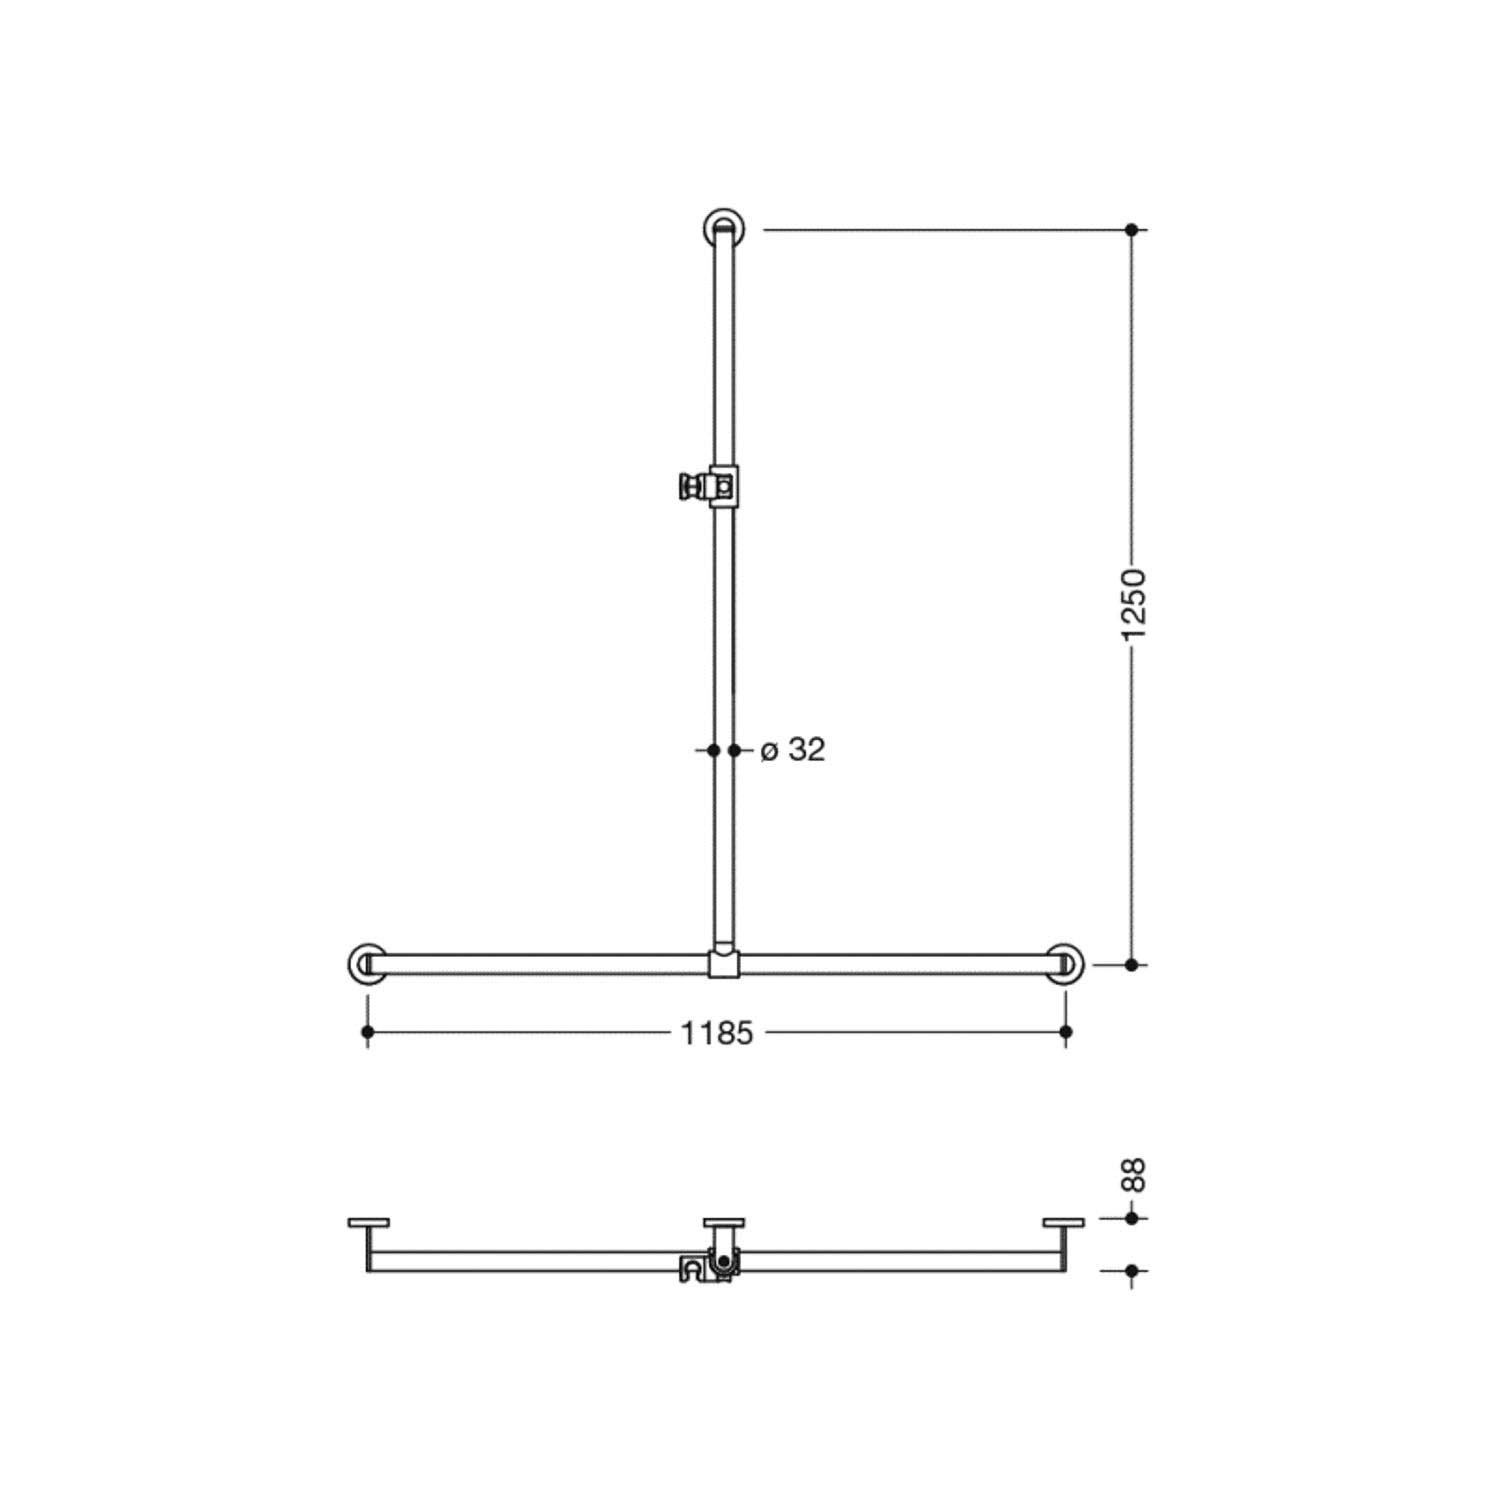 1250x1185mm Freestyle Supportive T Shaped Shower Rail with a chrome finish dimensional drawing